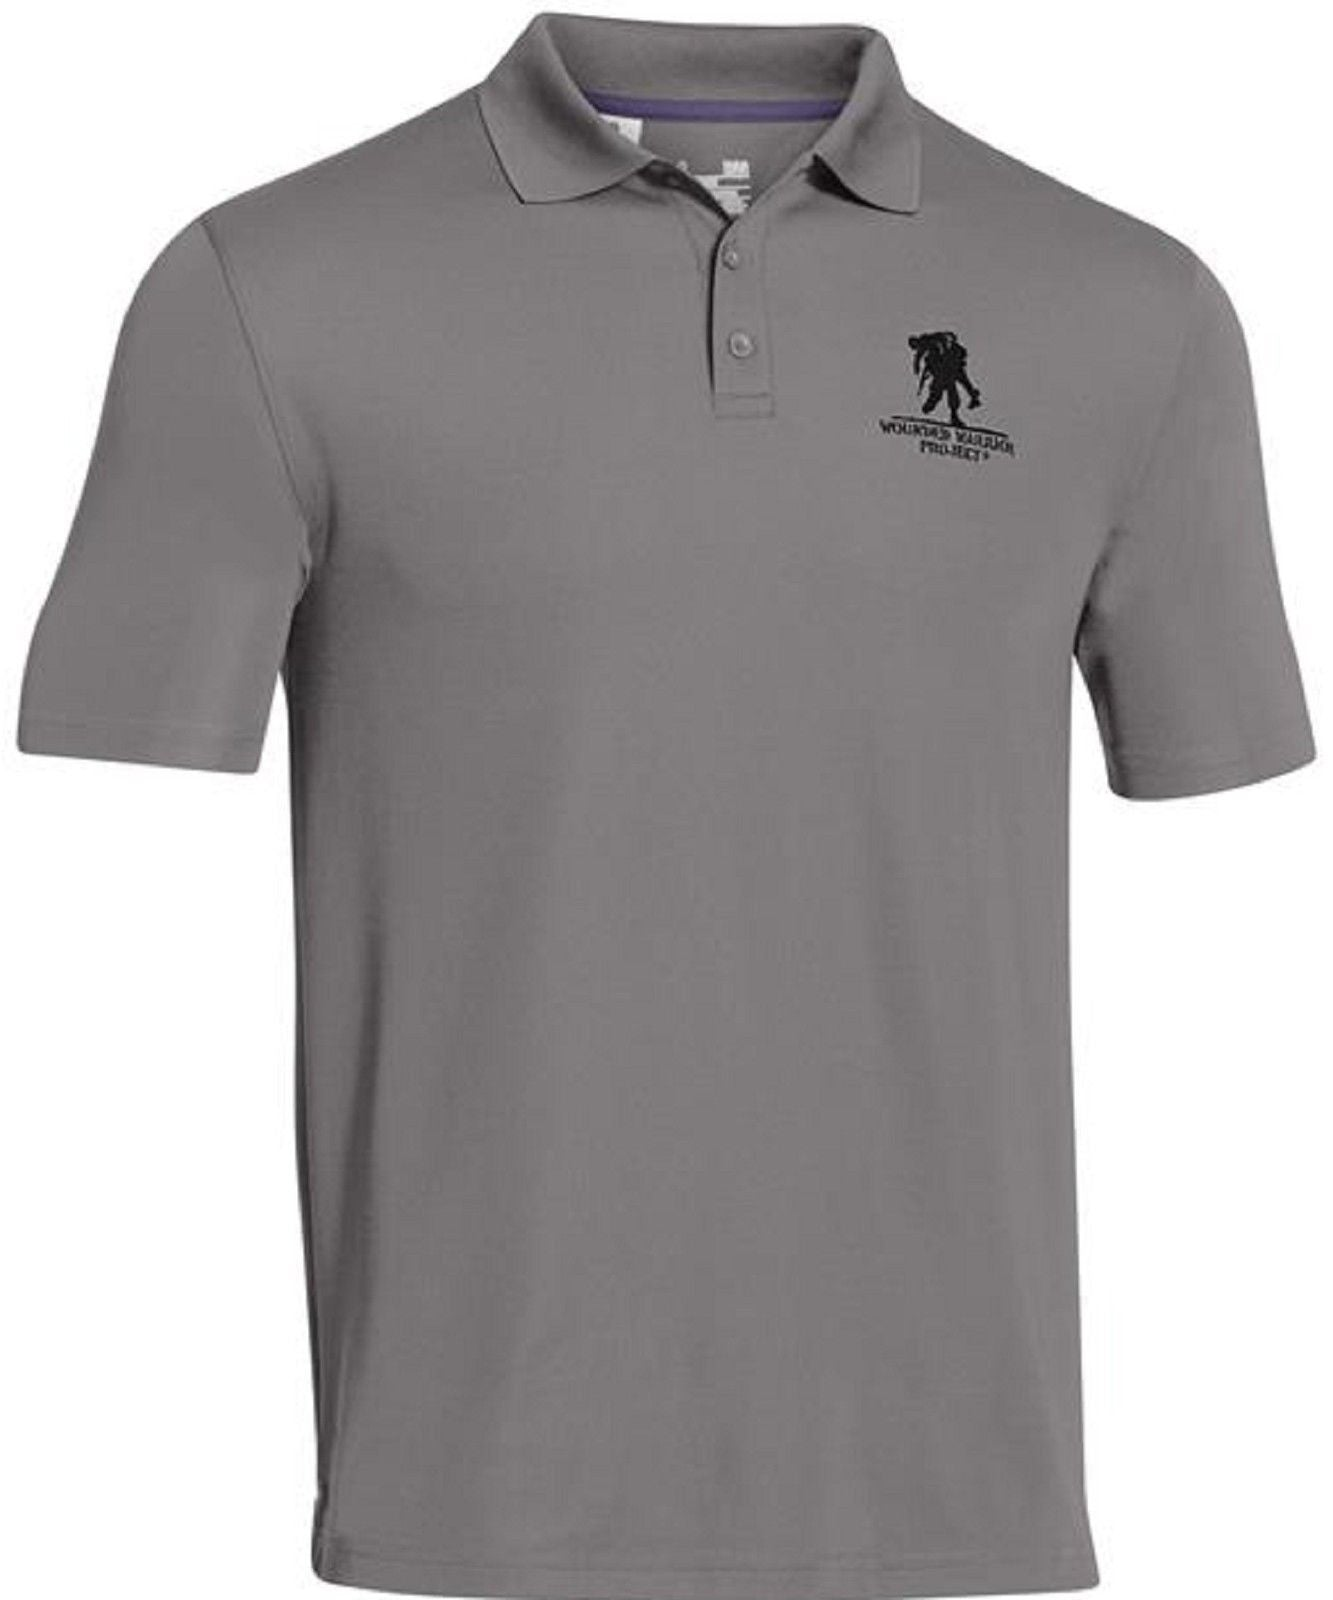 9282e0ac Move your mouse over image or click to enlarge. Under Armour Performance  Polo Shirt Wounded Warrior Project Collared ...